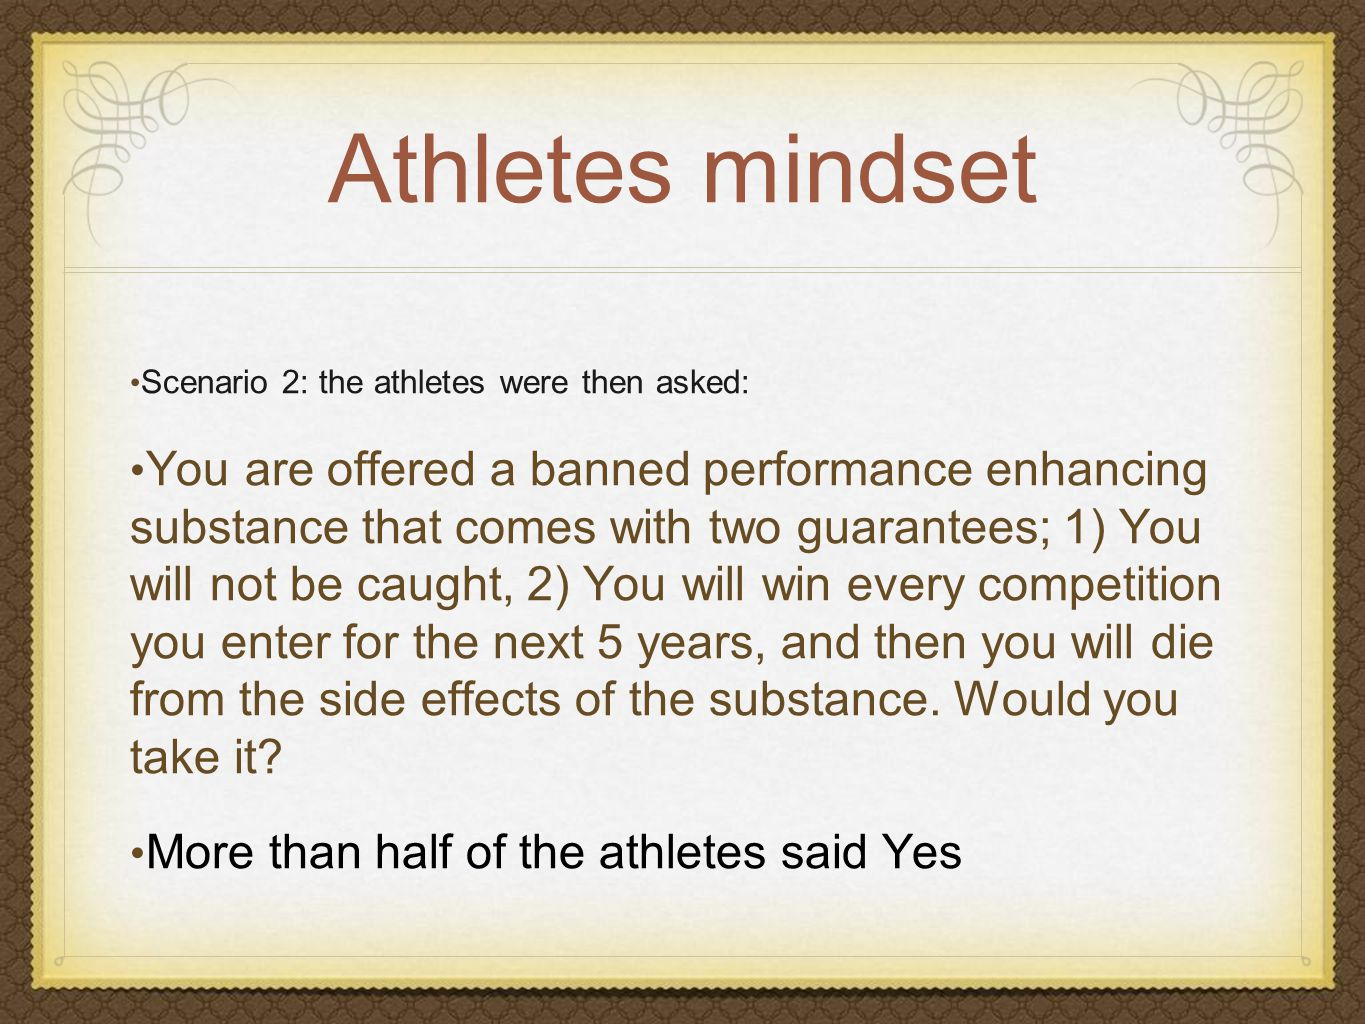 Athletes mindset Scenario 2: the athletes were then asked: You are offered a banned performance enhancing substance that comes with two guarantees; 1) You will not be caught, 2) You will win every competition you enter for the next 5 years, and then you will die from the side effects of the substance.